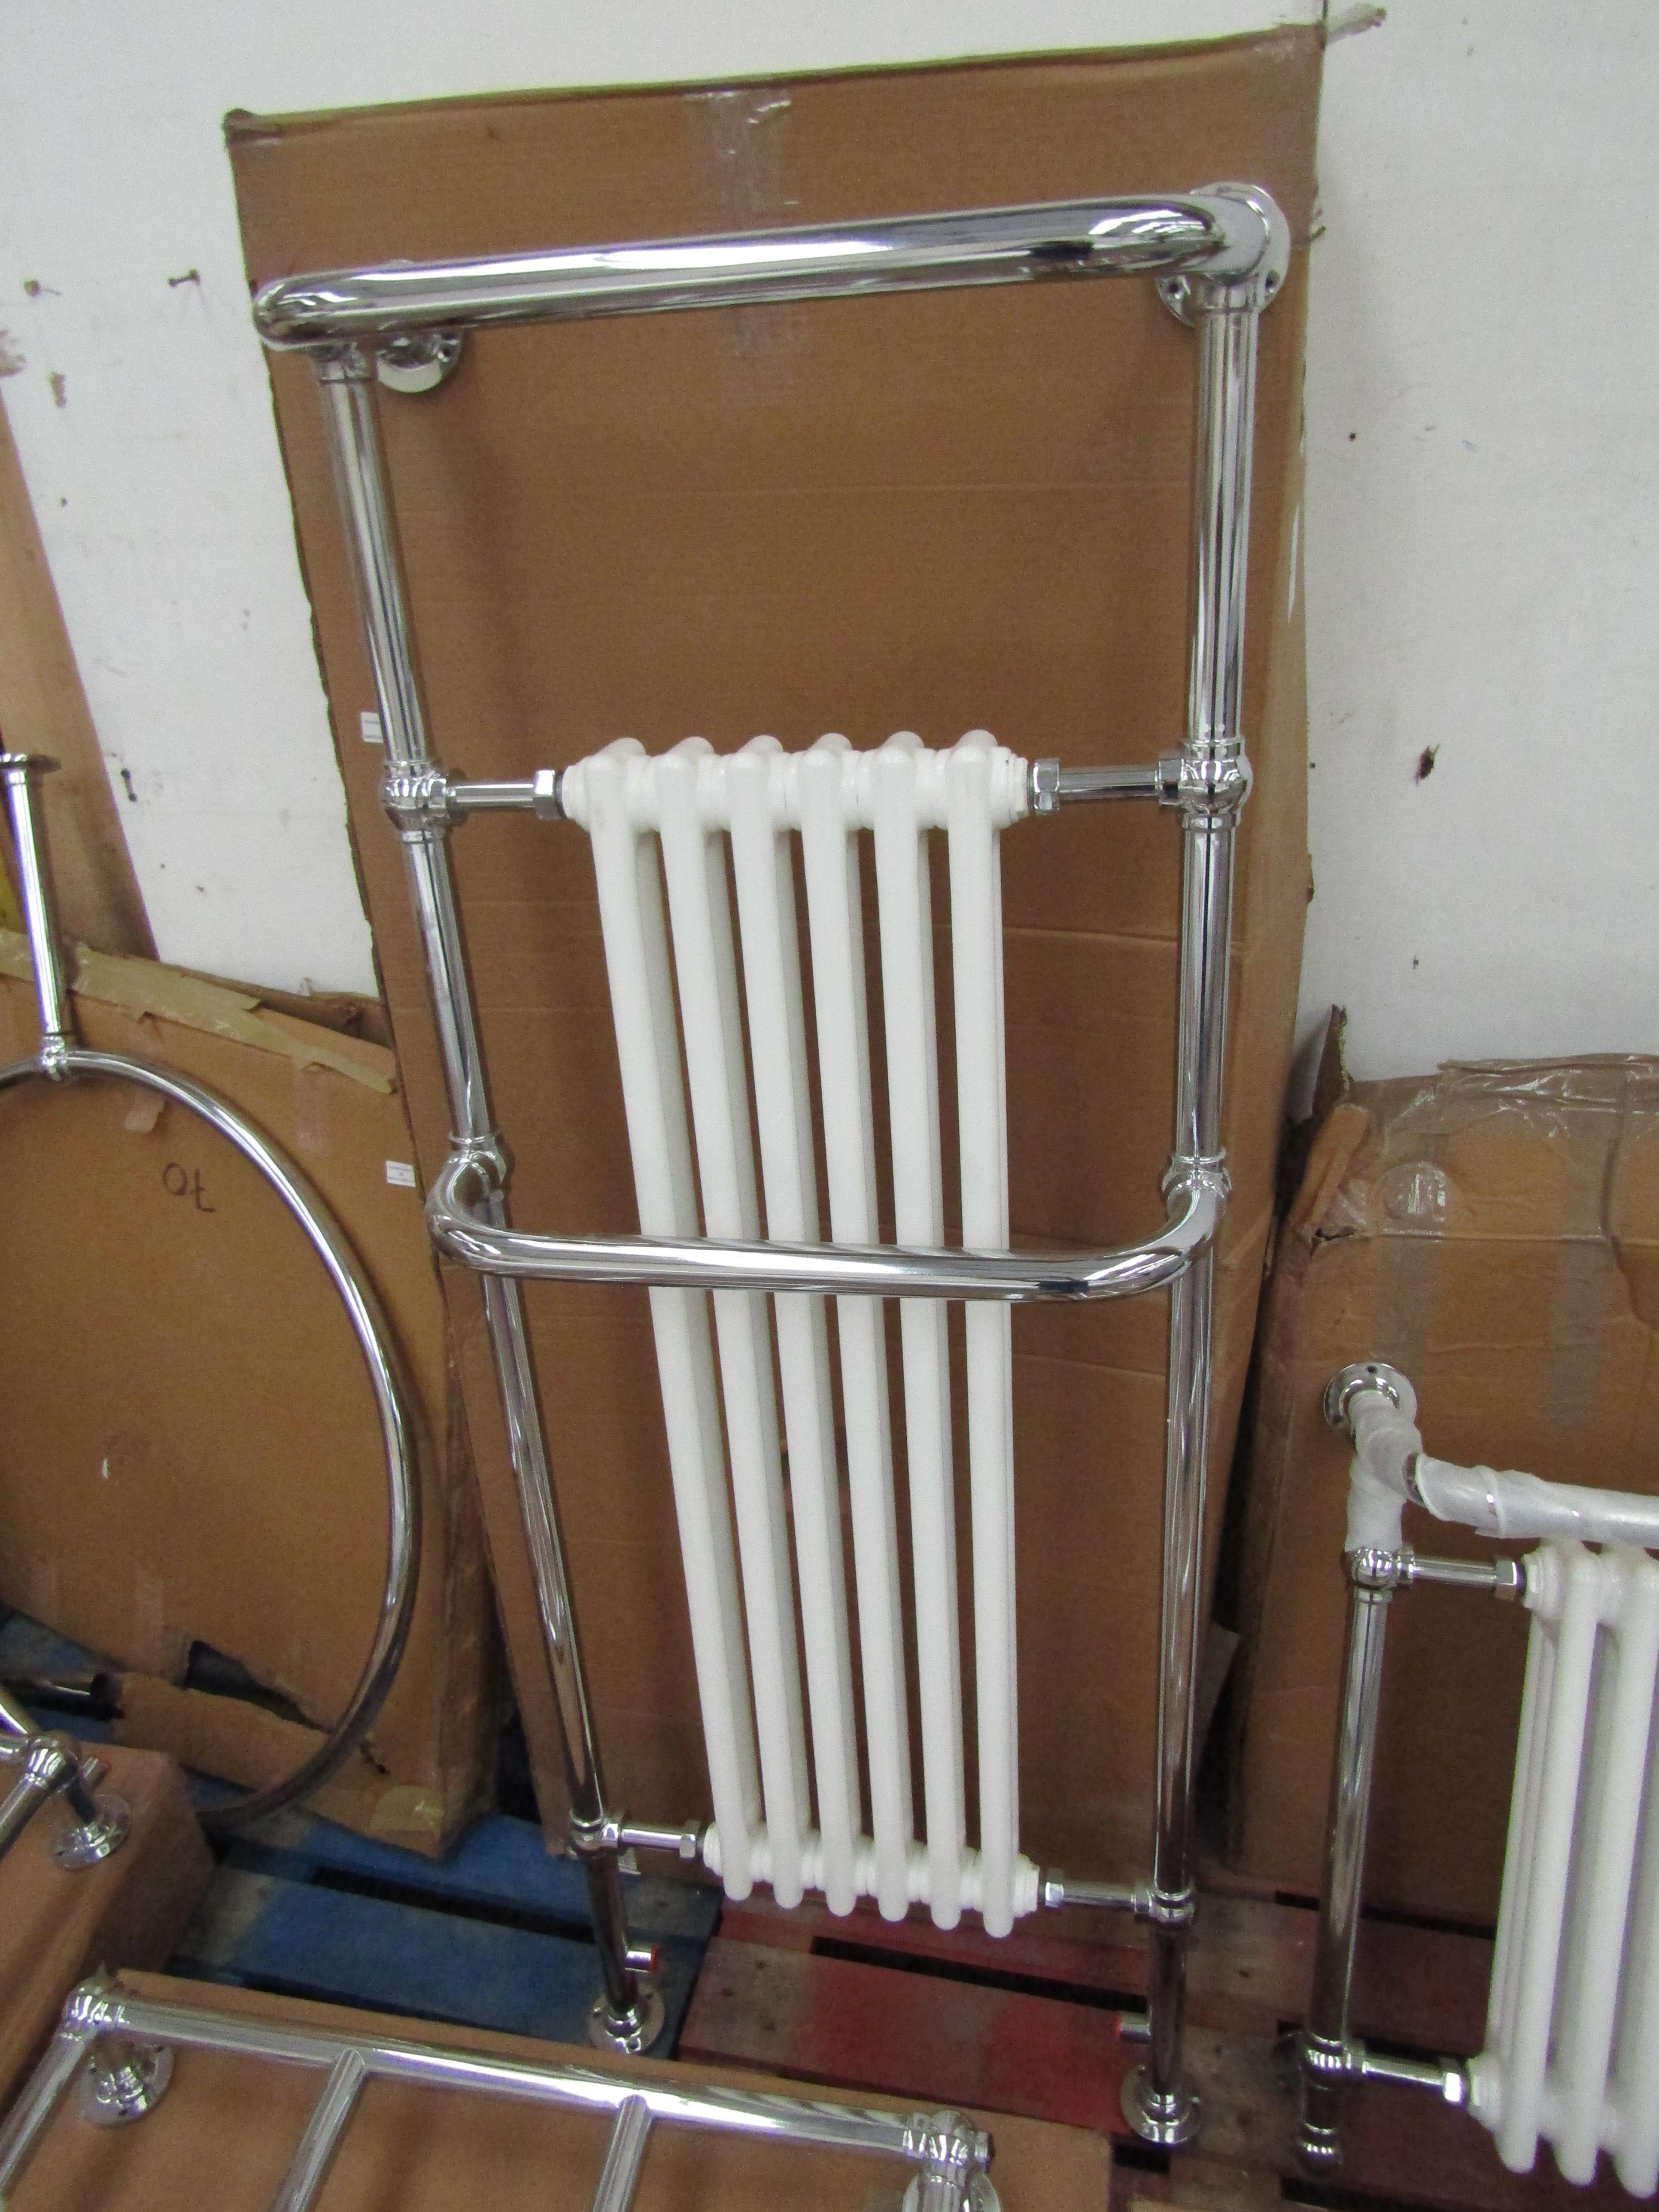 Old London Hazel 6 section Traditional radiator, boxed and unchecked, measure 1490mm x 240 x 540